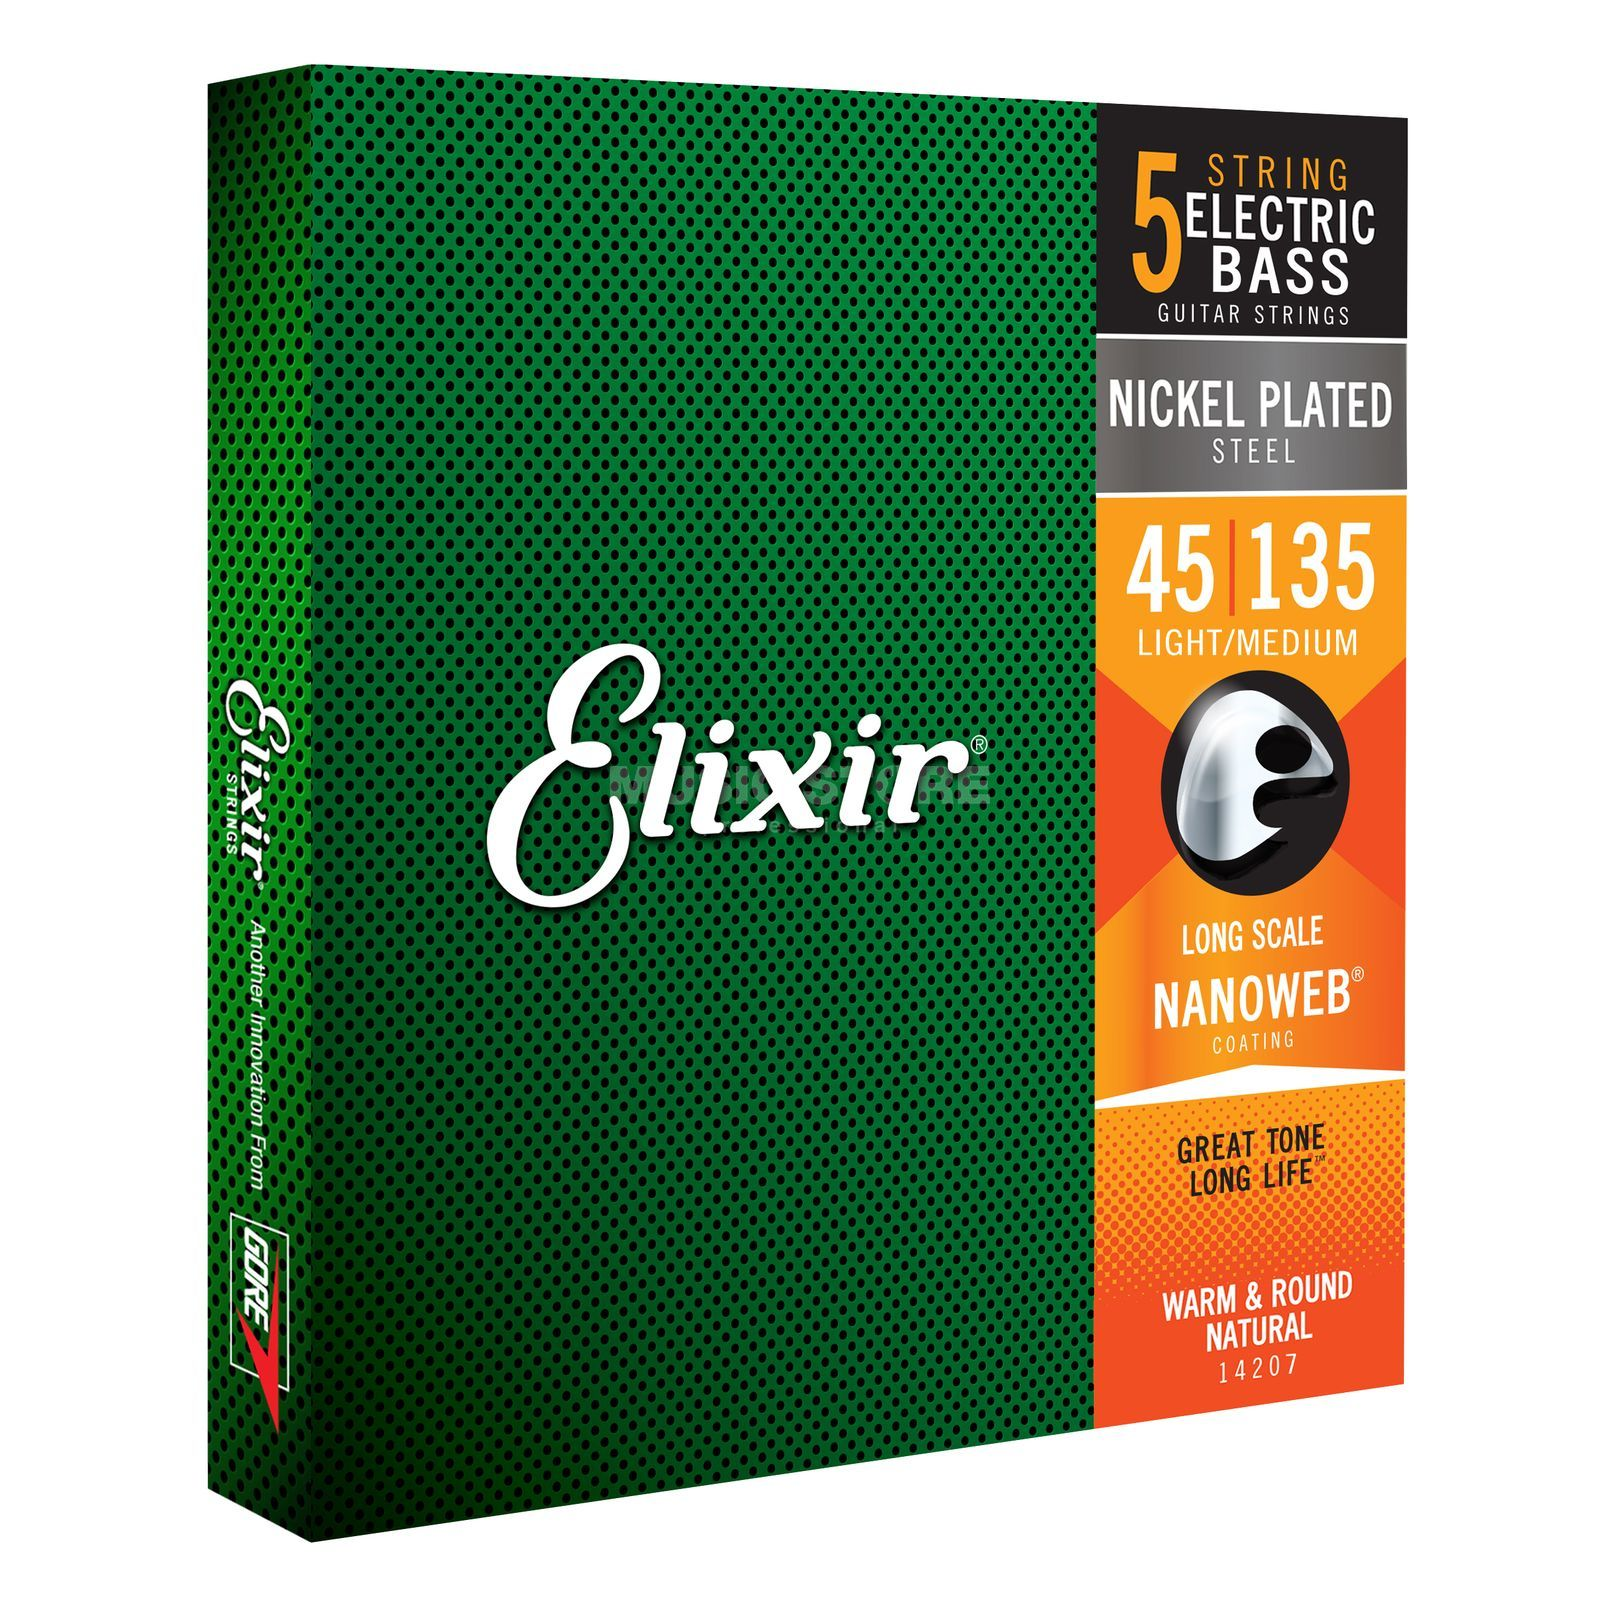 Elixir 5er Bass 45-135 NanoWeb 14207 Light/Medium Image du produit